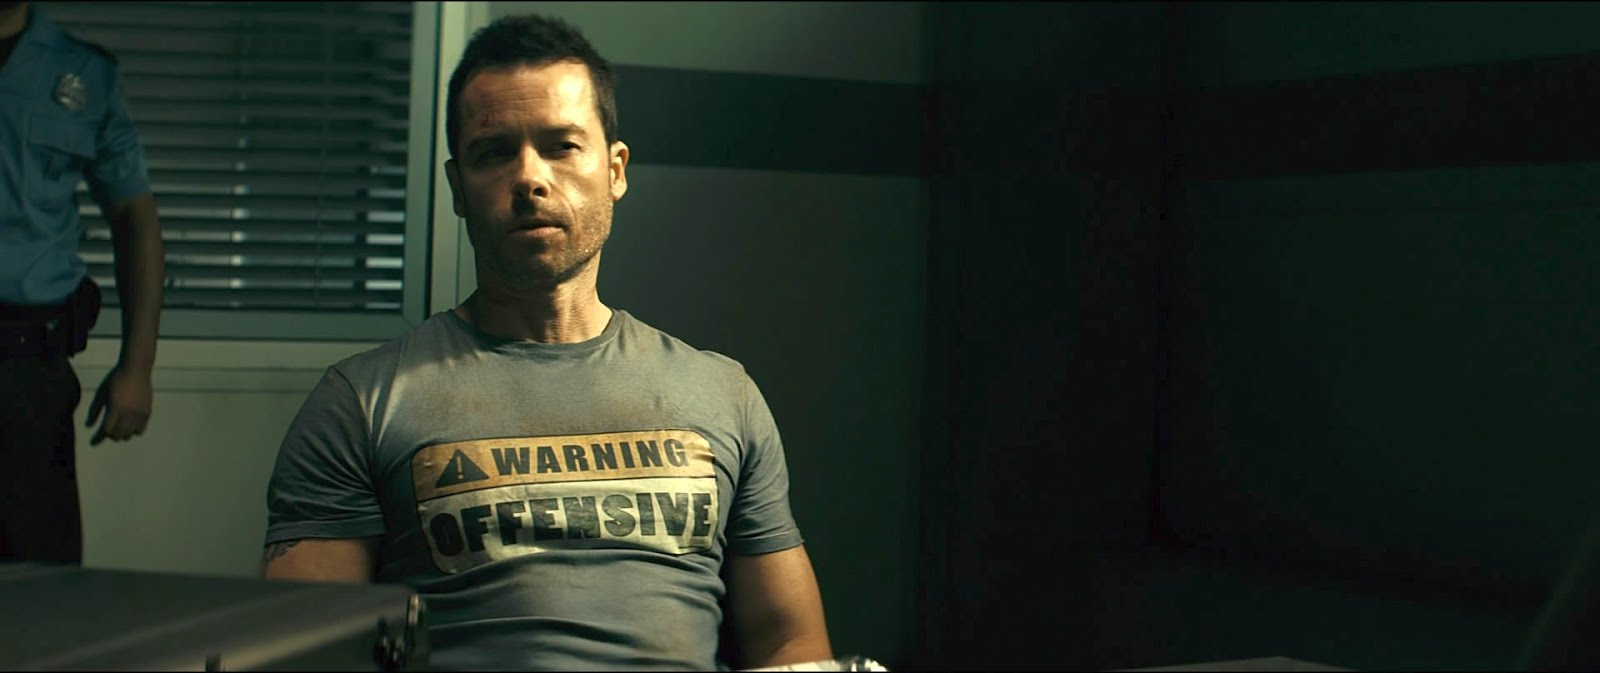 Guy Pearce Lockout Muscles | www.pixshark.com - Images ...